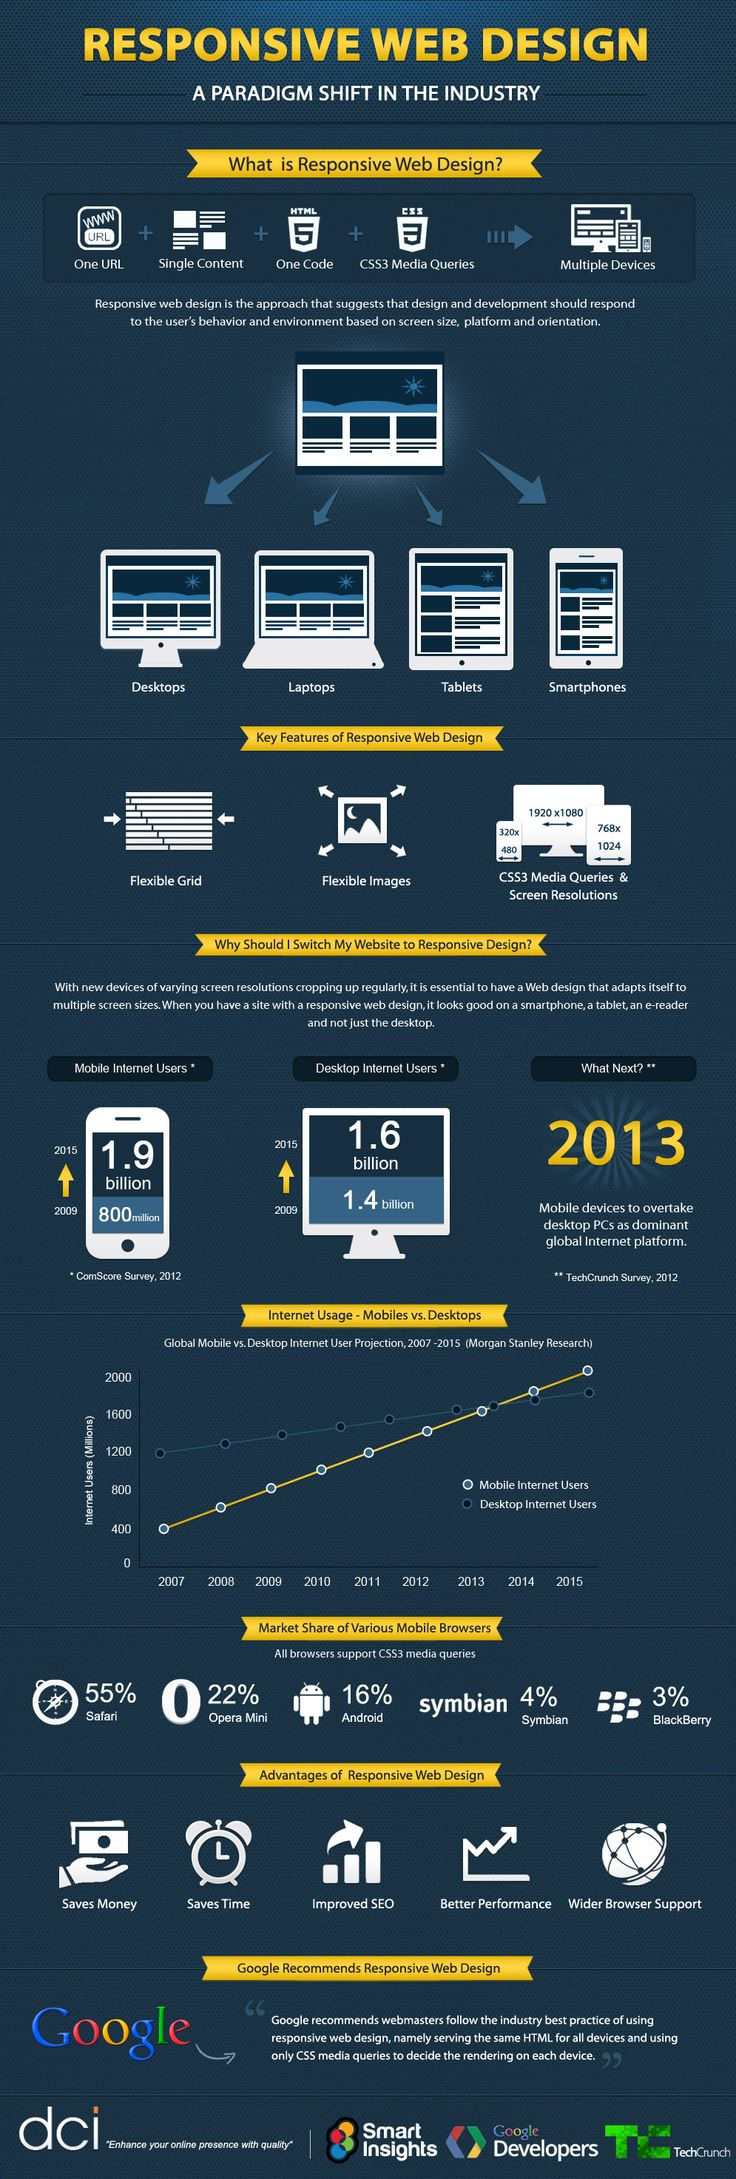 Why You Need #Responsive Web Design.